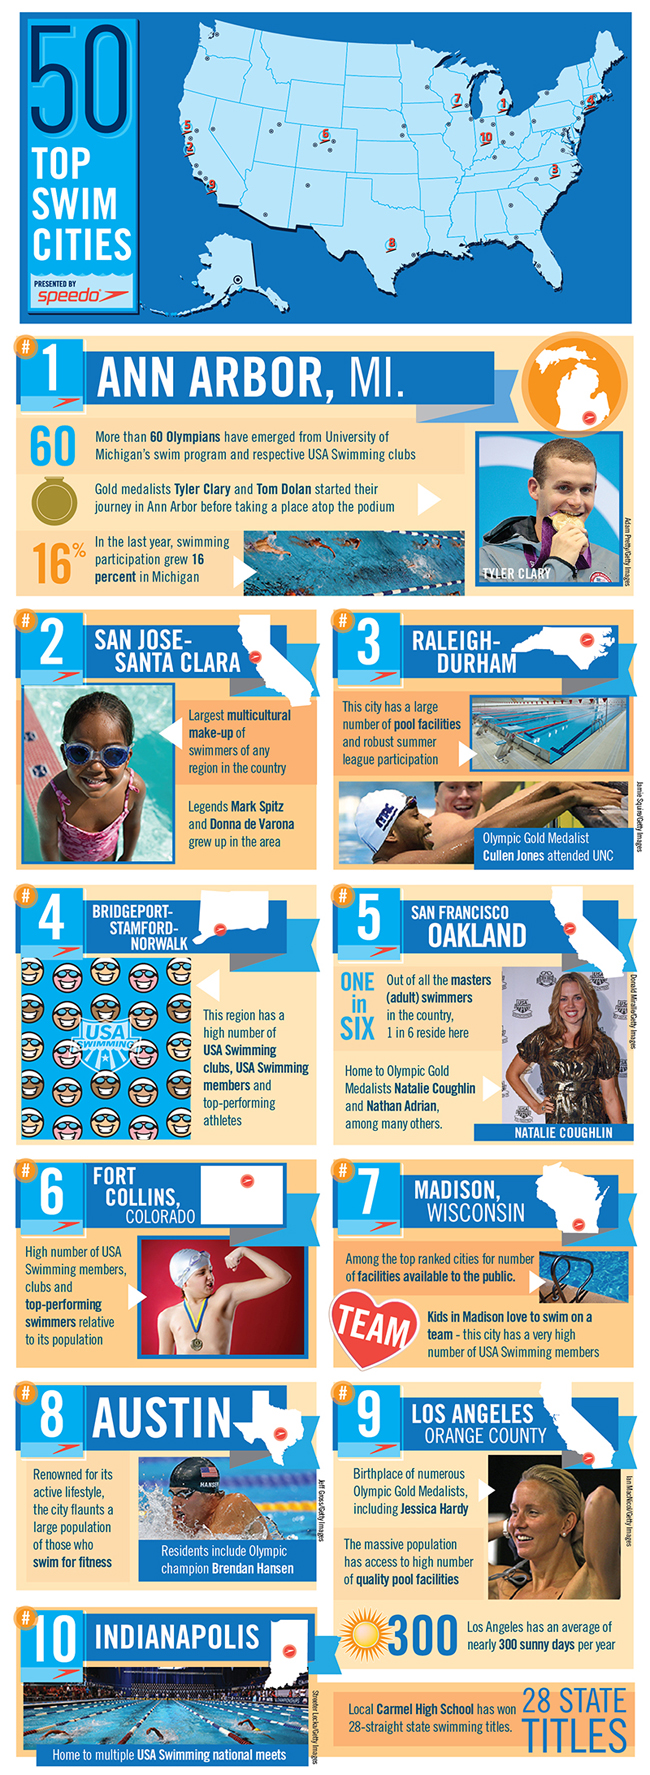 50 Top Swim Cities Infographic - Kids swimming to be future medalists